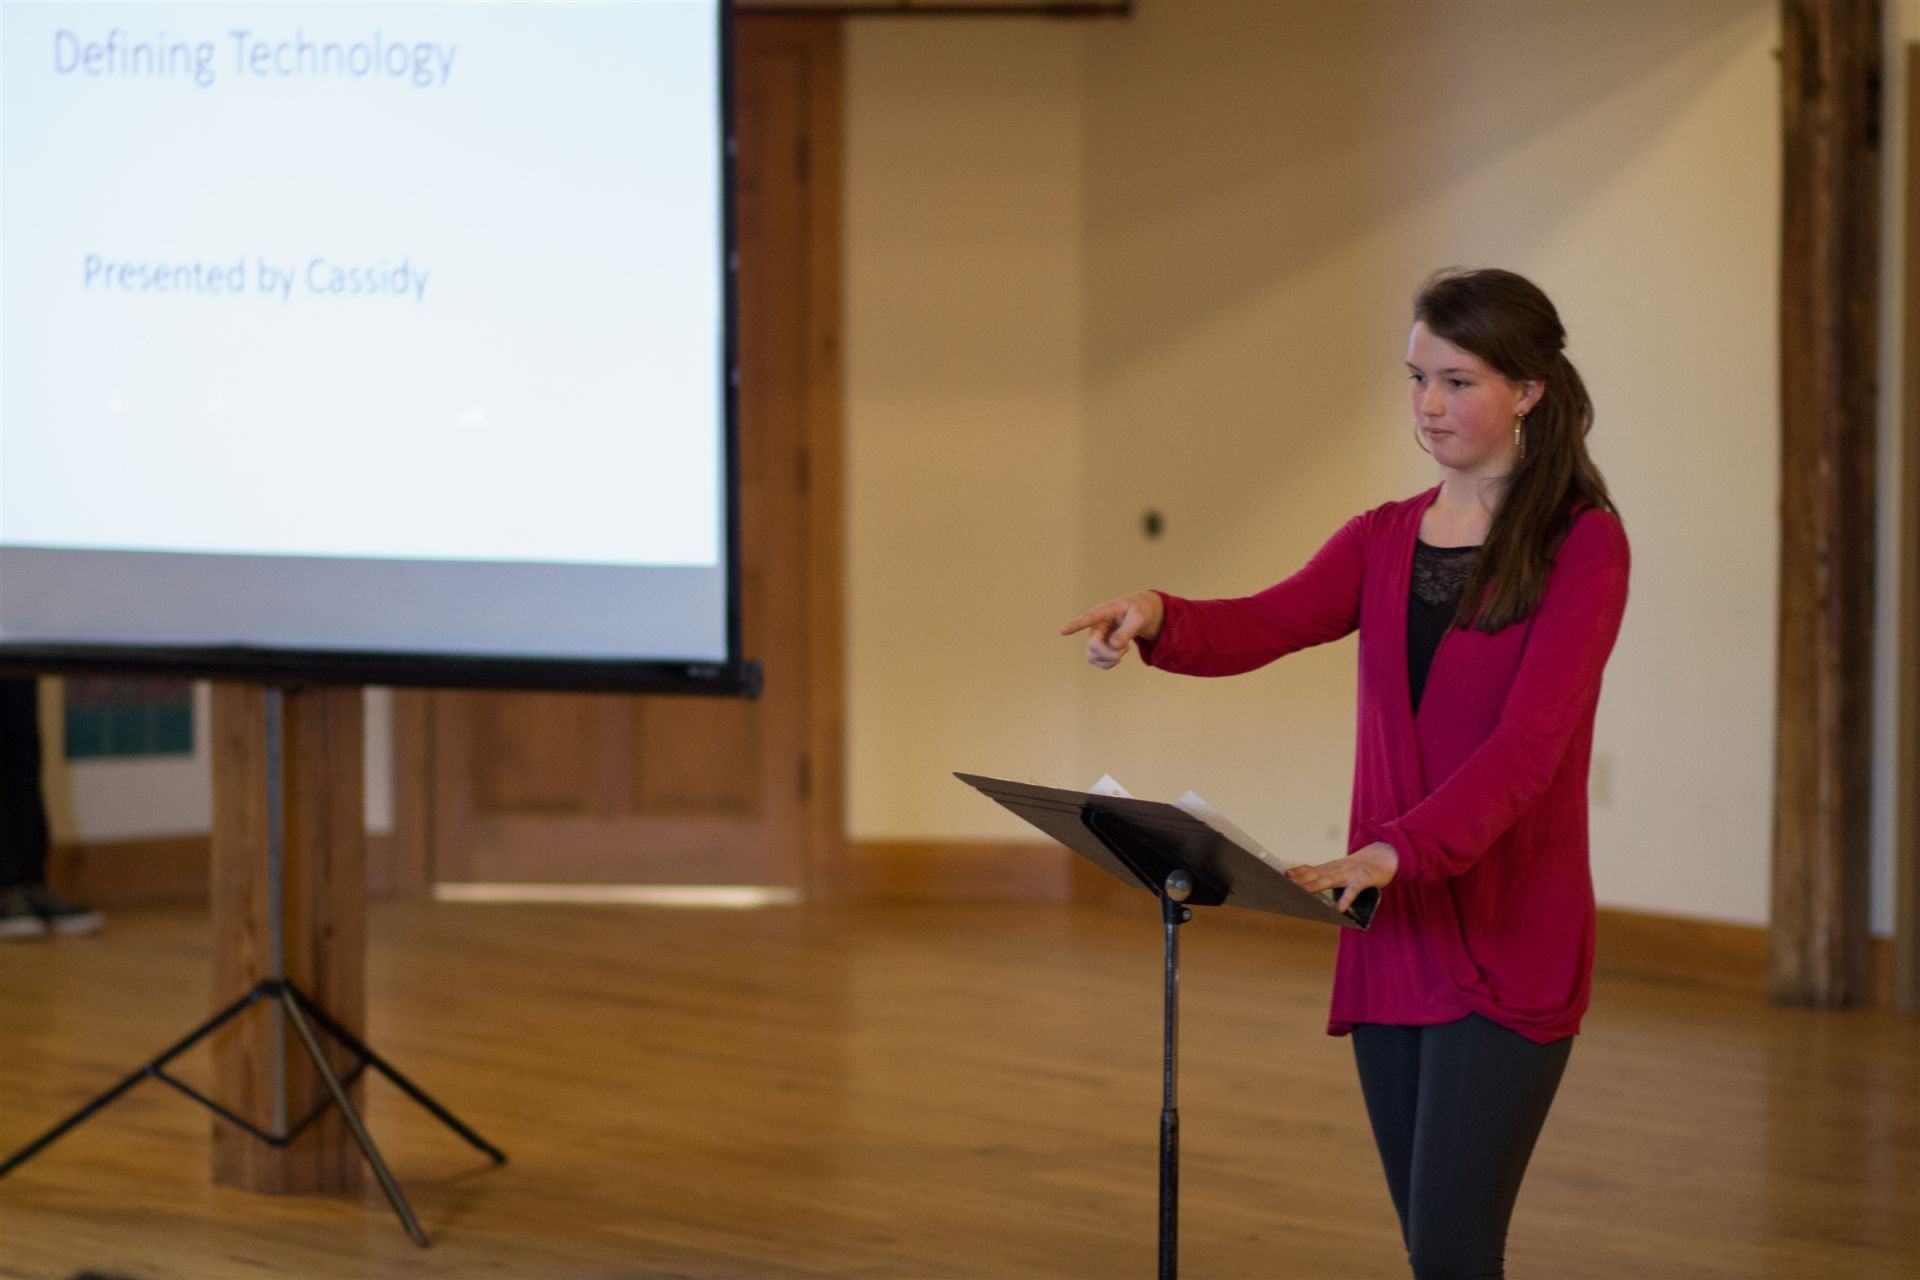 Cassidy Dufour '19 gives a talk during the freshmen capstone presentation. The presentation gave scope to the many facets of technology and how they permeate through our everyday life.